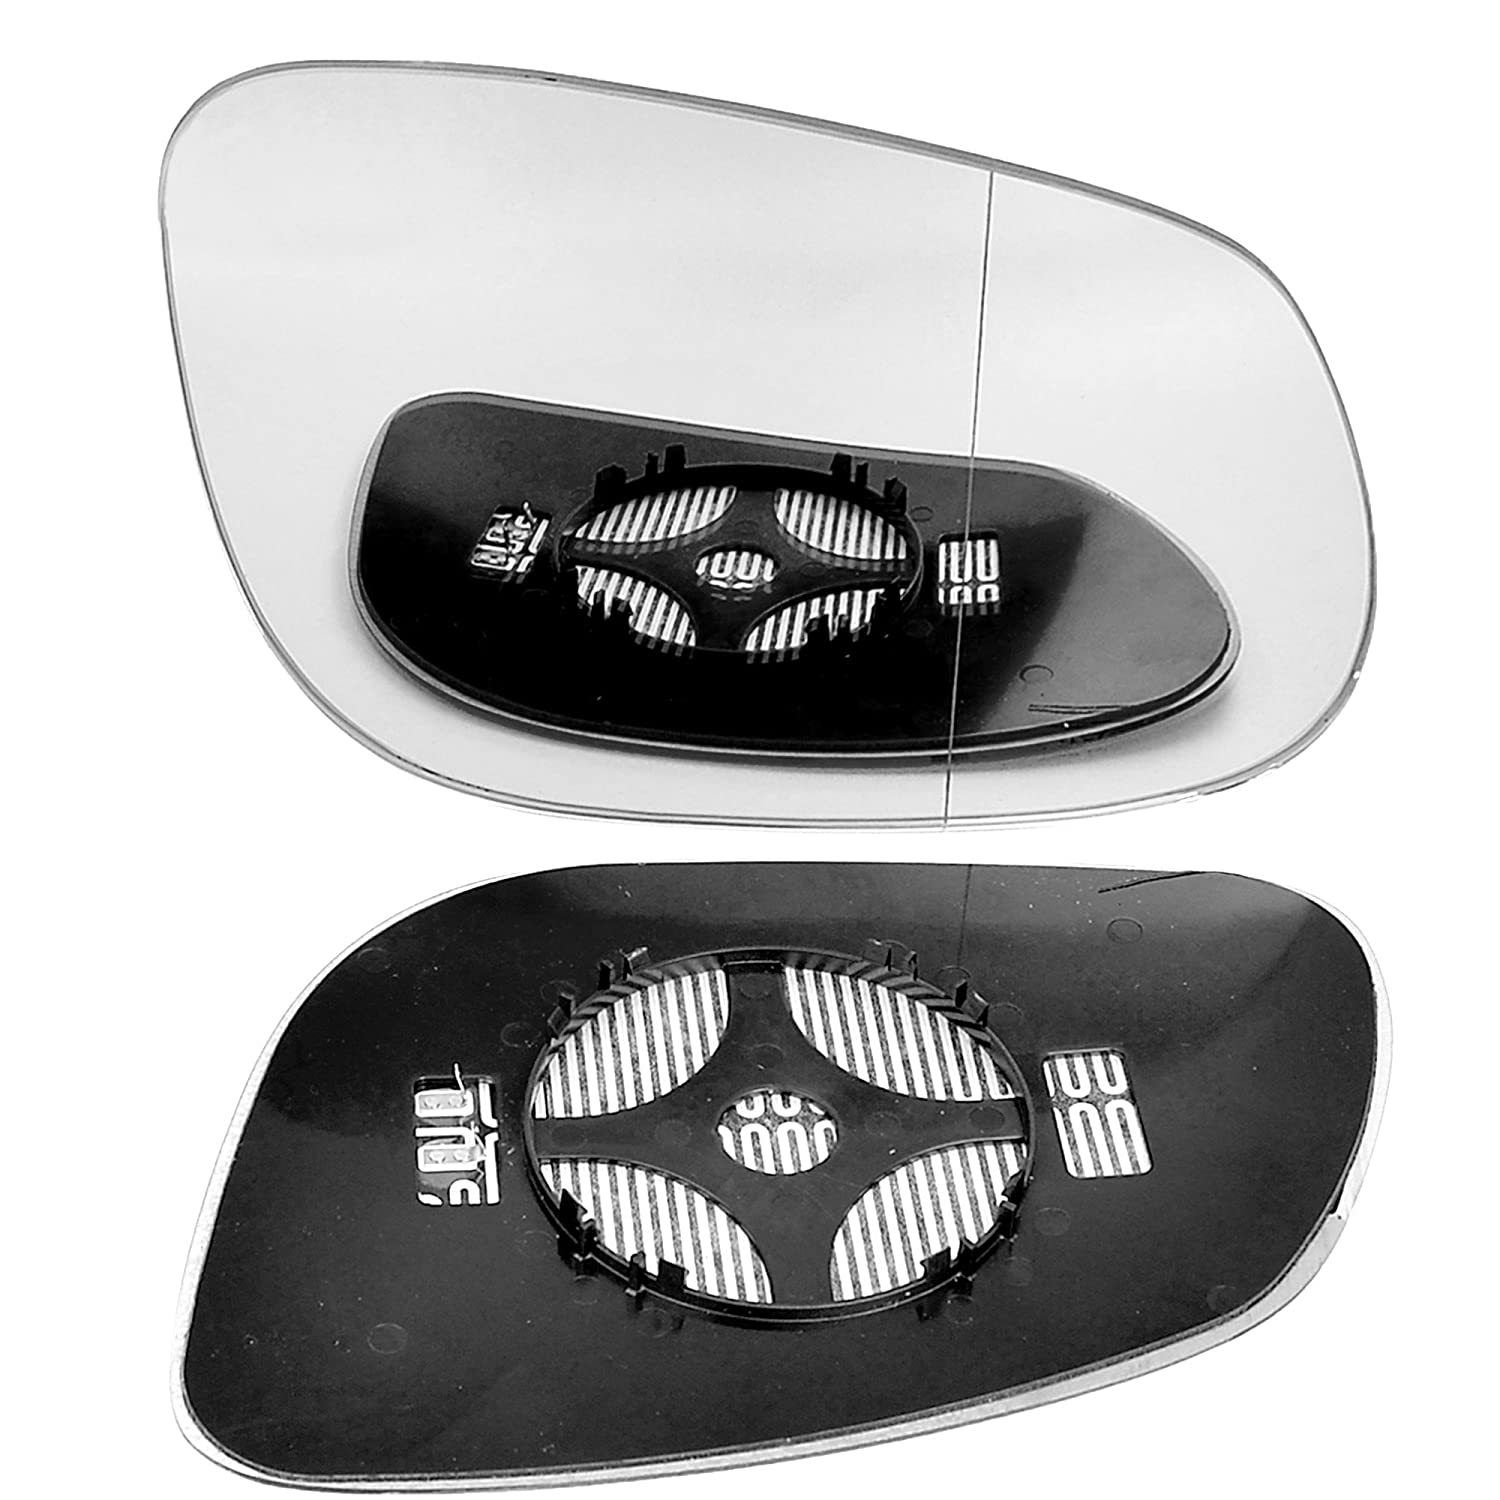 Right driver side wing door clip on mirror glass for Porshe Cayenne 2002-2006 Wide Angle Heated